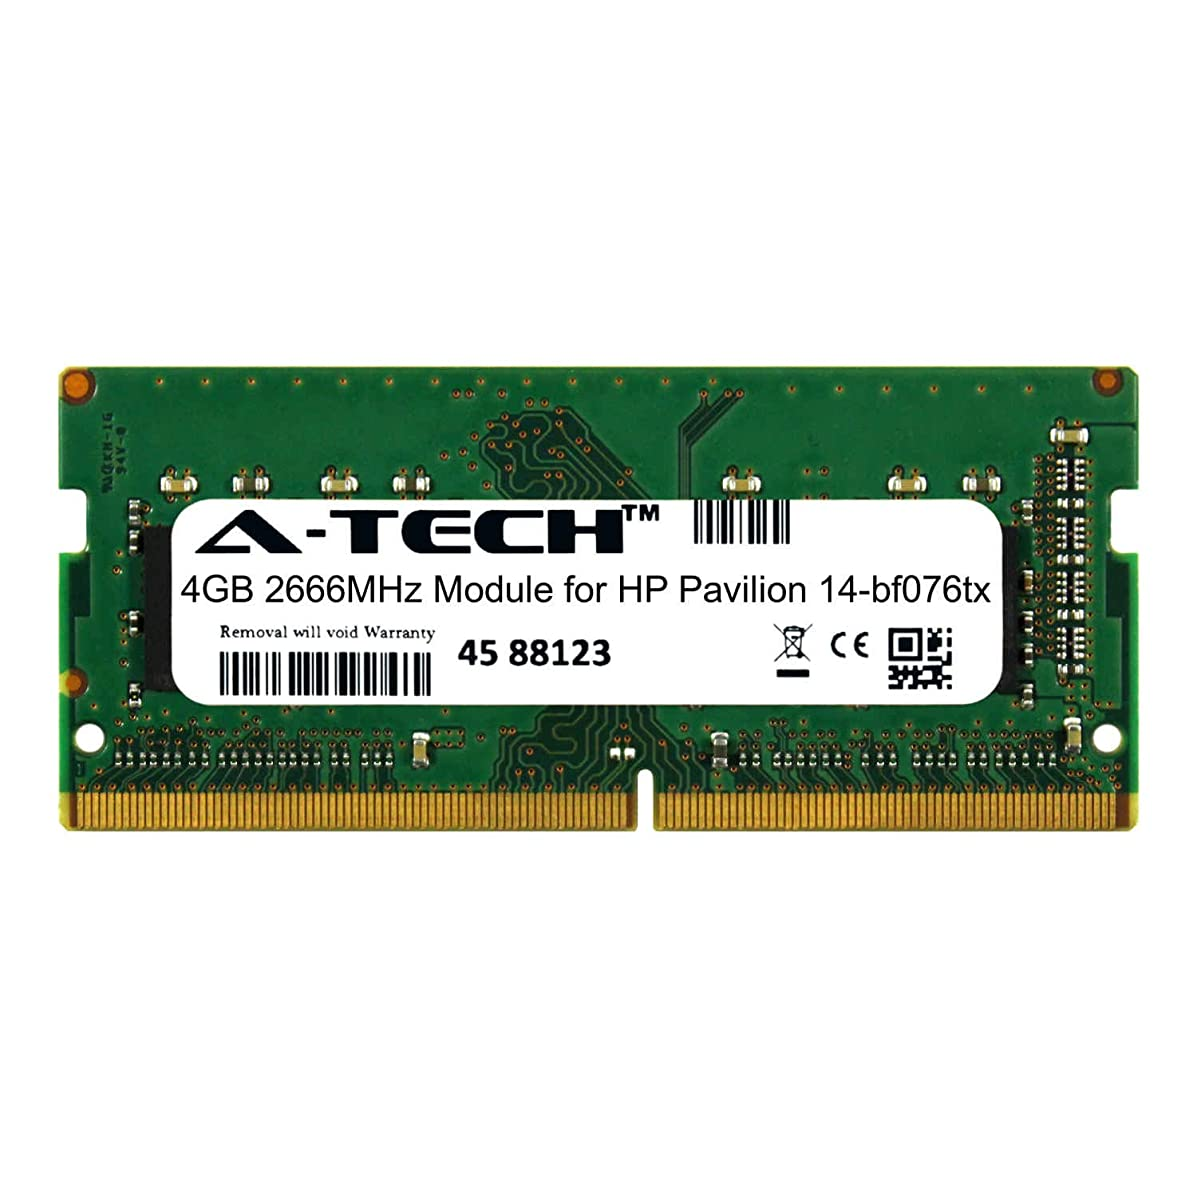 A-Tech 4GB Module for HP Pavilion 14-bf076tx Laptop & Notebook Compatible DDR4 2666Mhz Memory Ram (ATMS307582A25977X1)